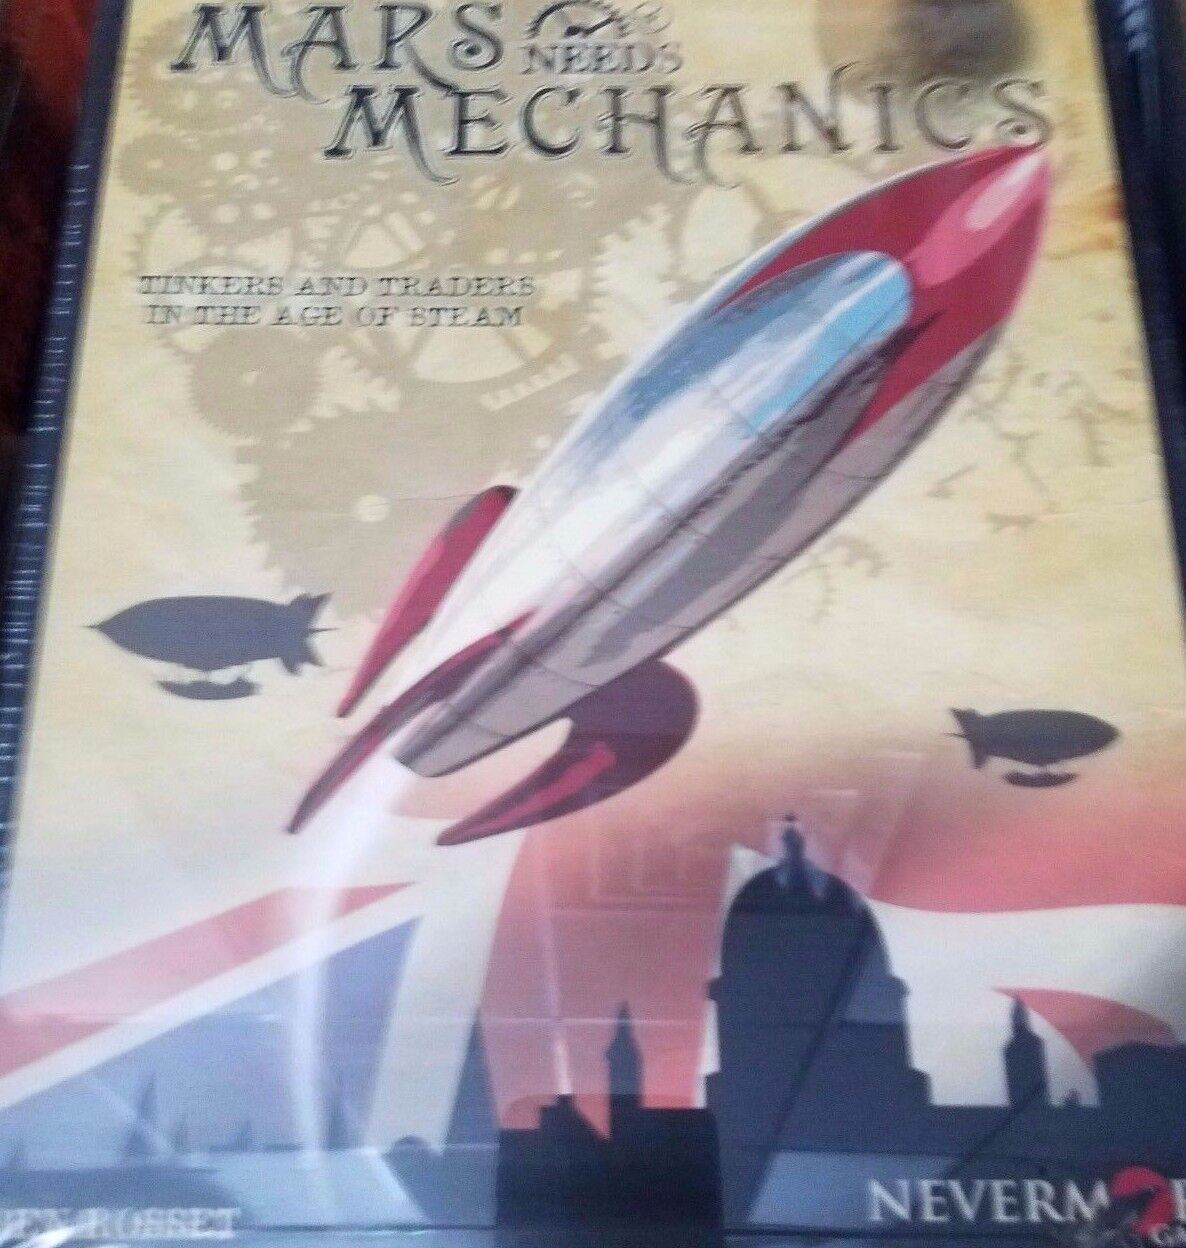 Mars Needs Mechanics - Board Game Awesome Games New